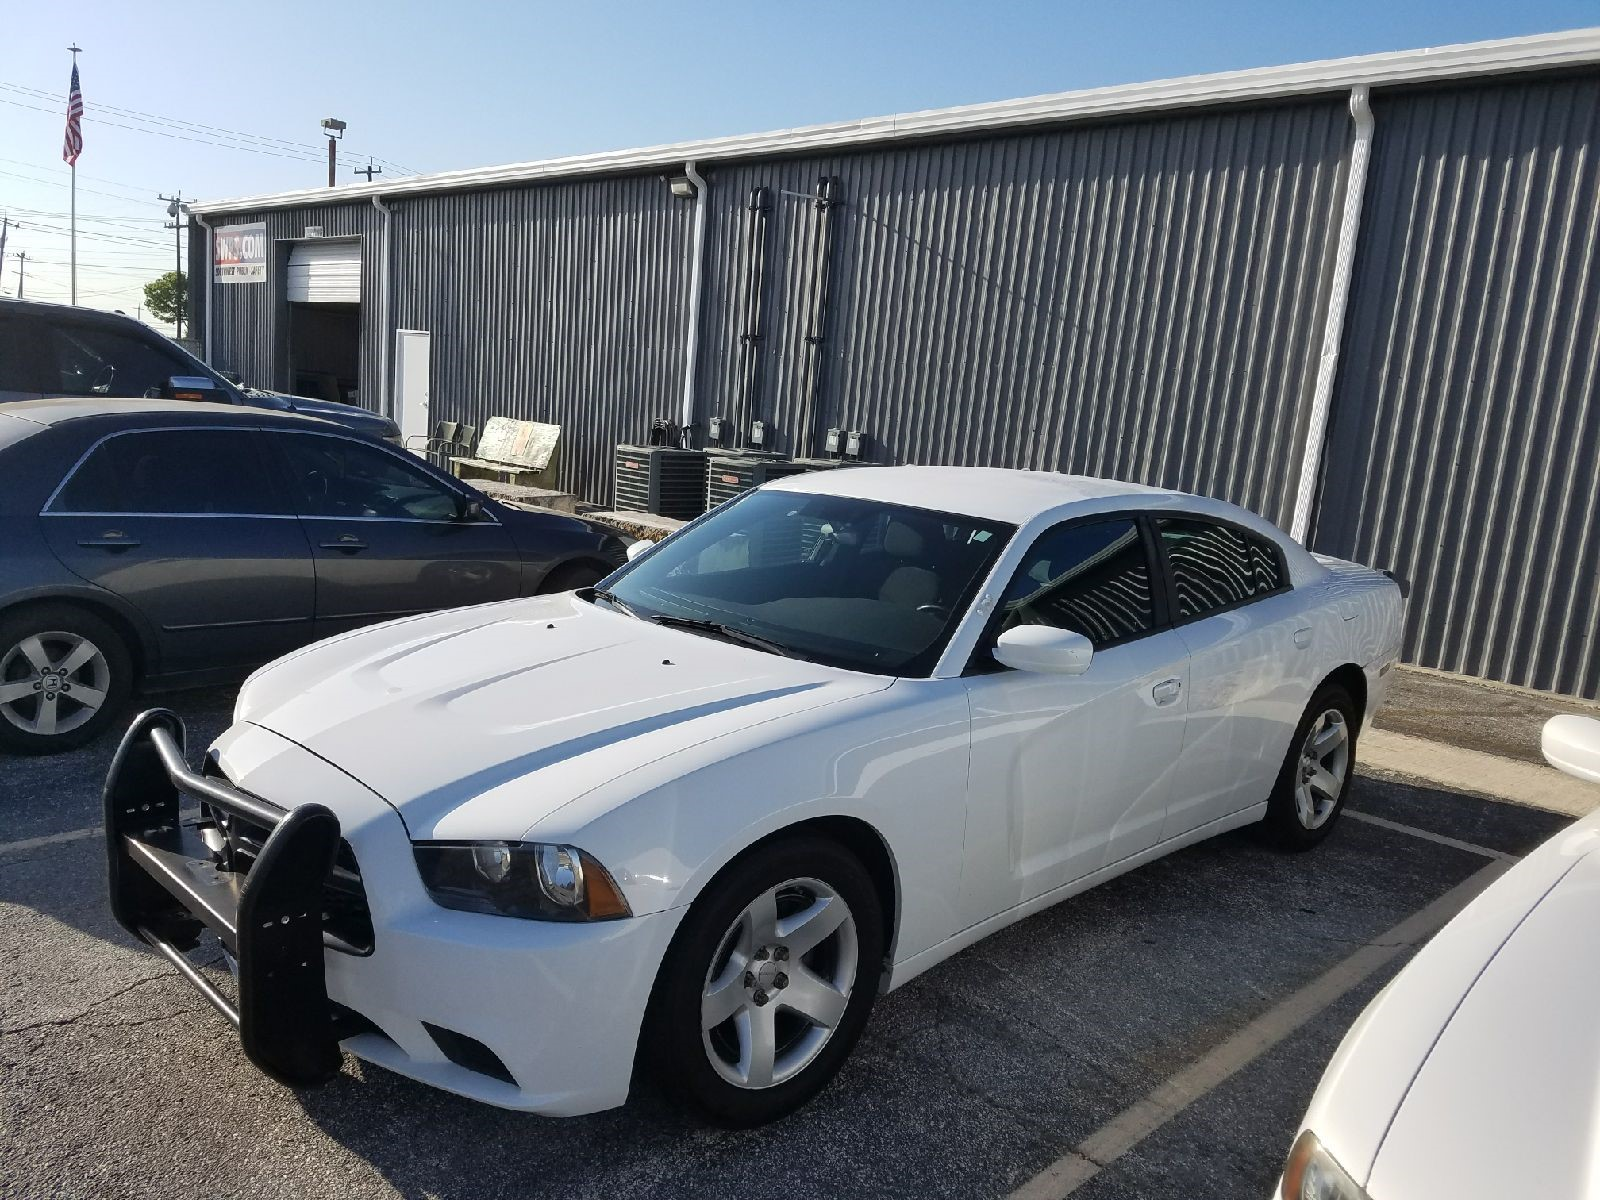 file dodge cubic srt hemi motor charger with inch wiki a